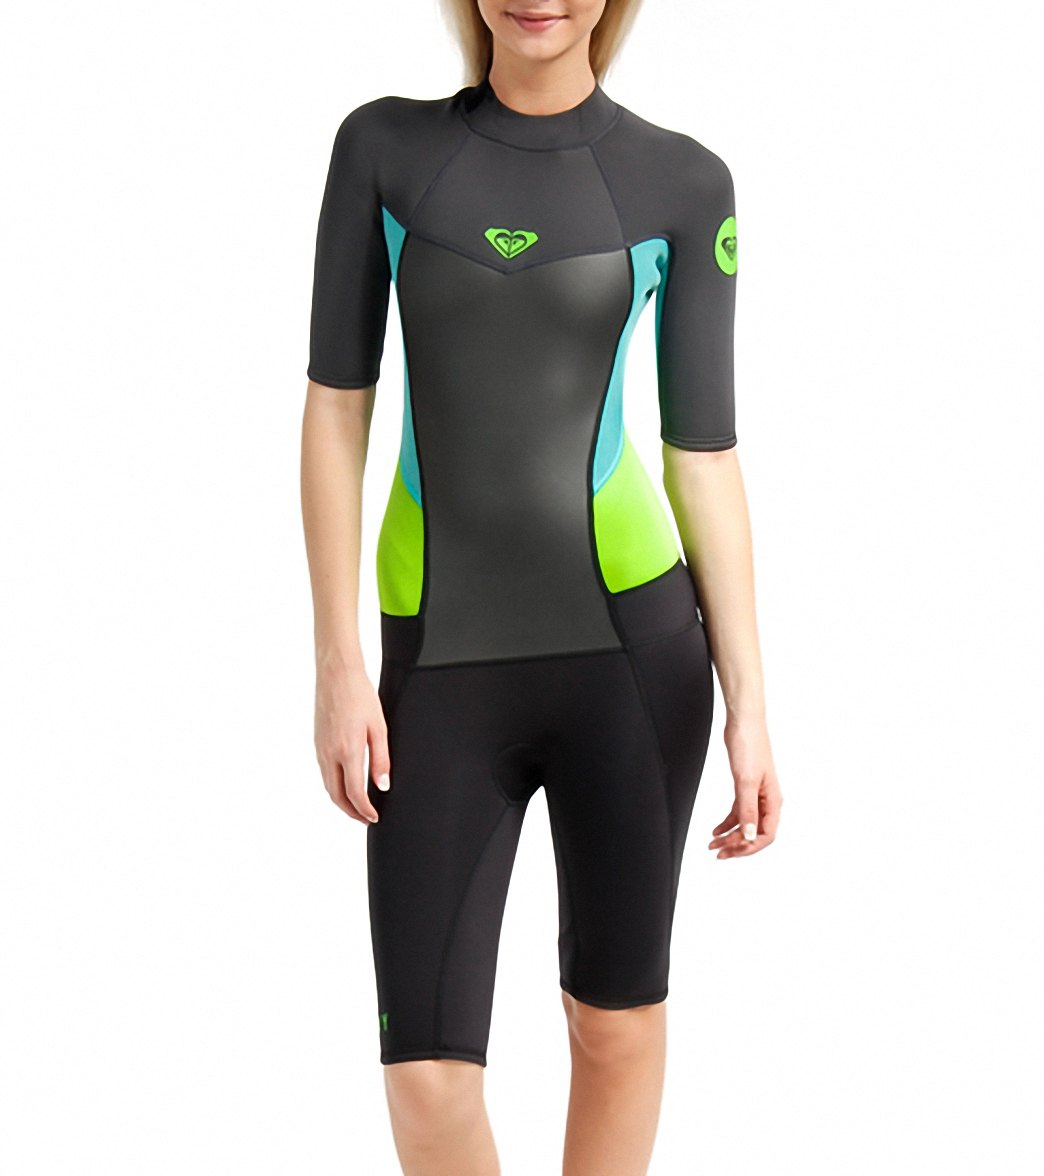 ... Roxy Women's 2/2MM Syncro Short Sleeve Back Zip Spring Suit Wetsuit  MODEL INFO Play Video. View all colors